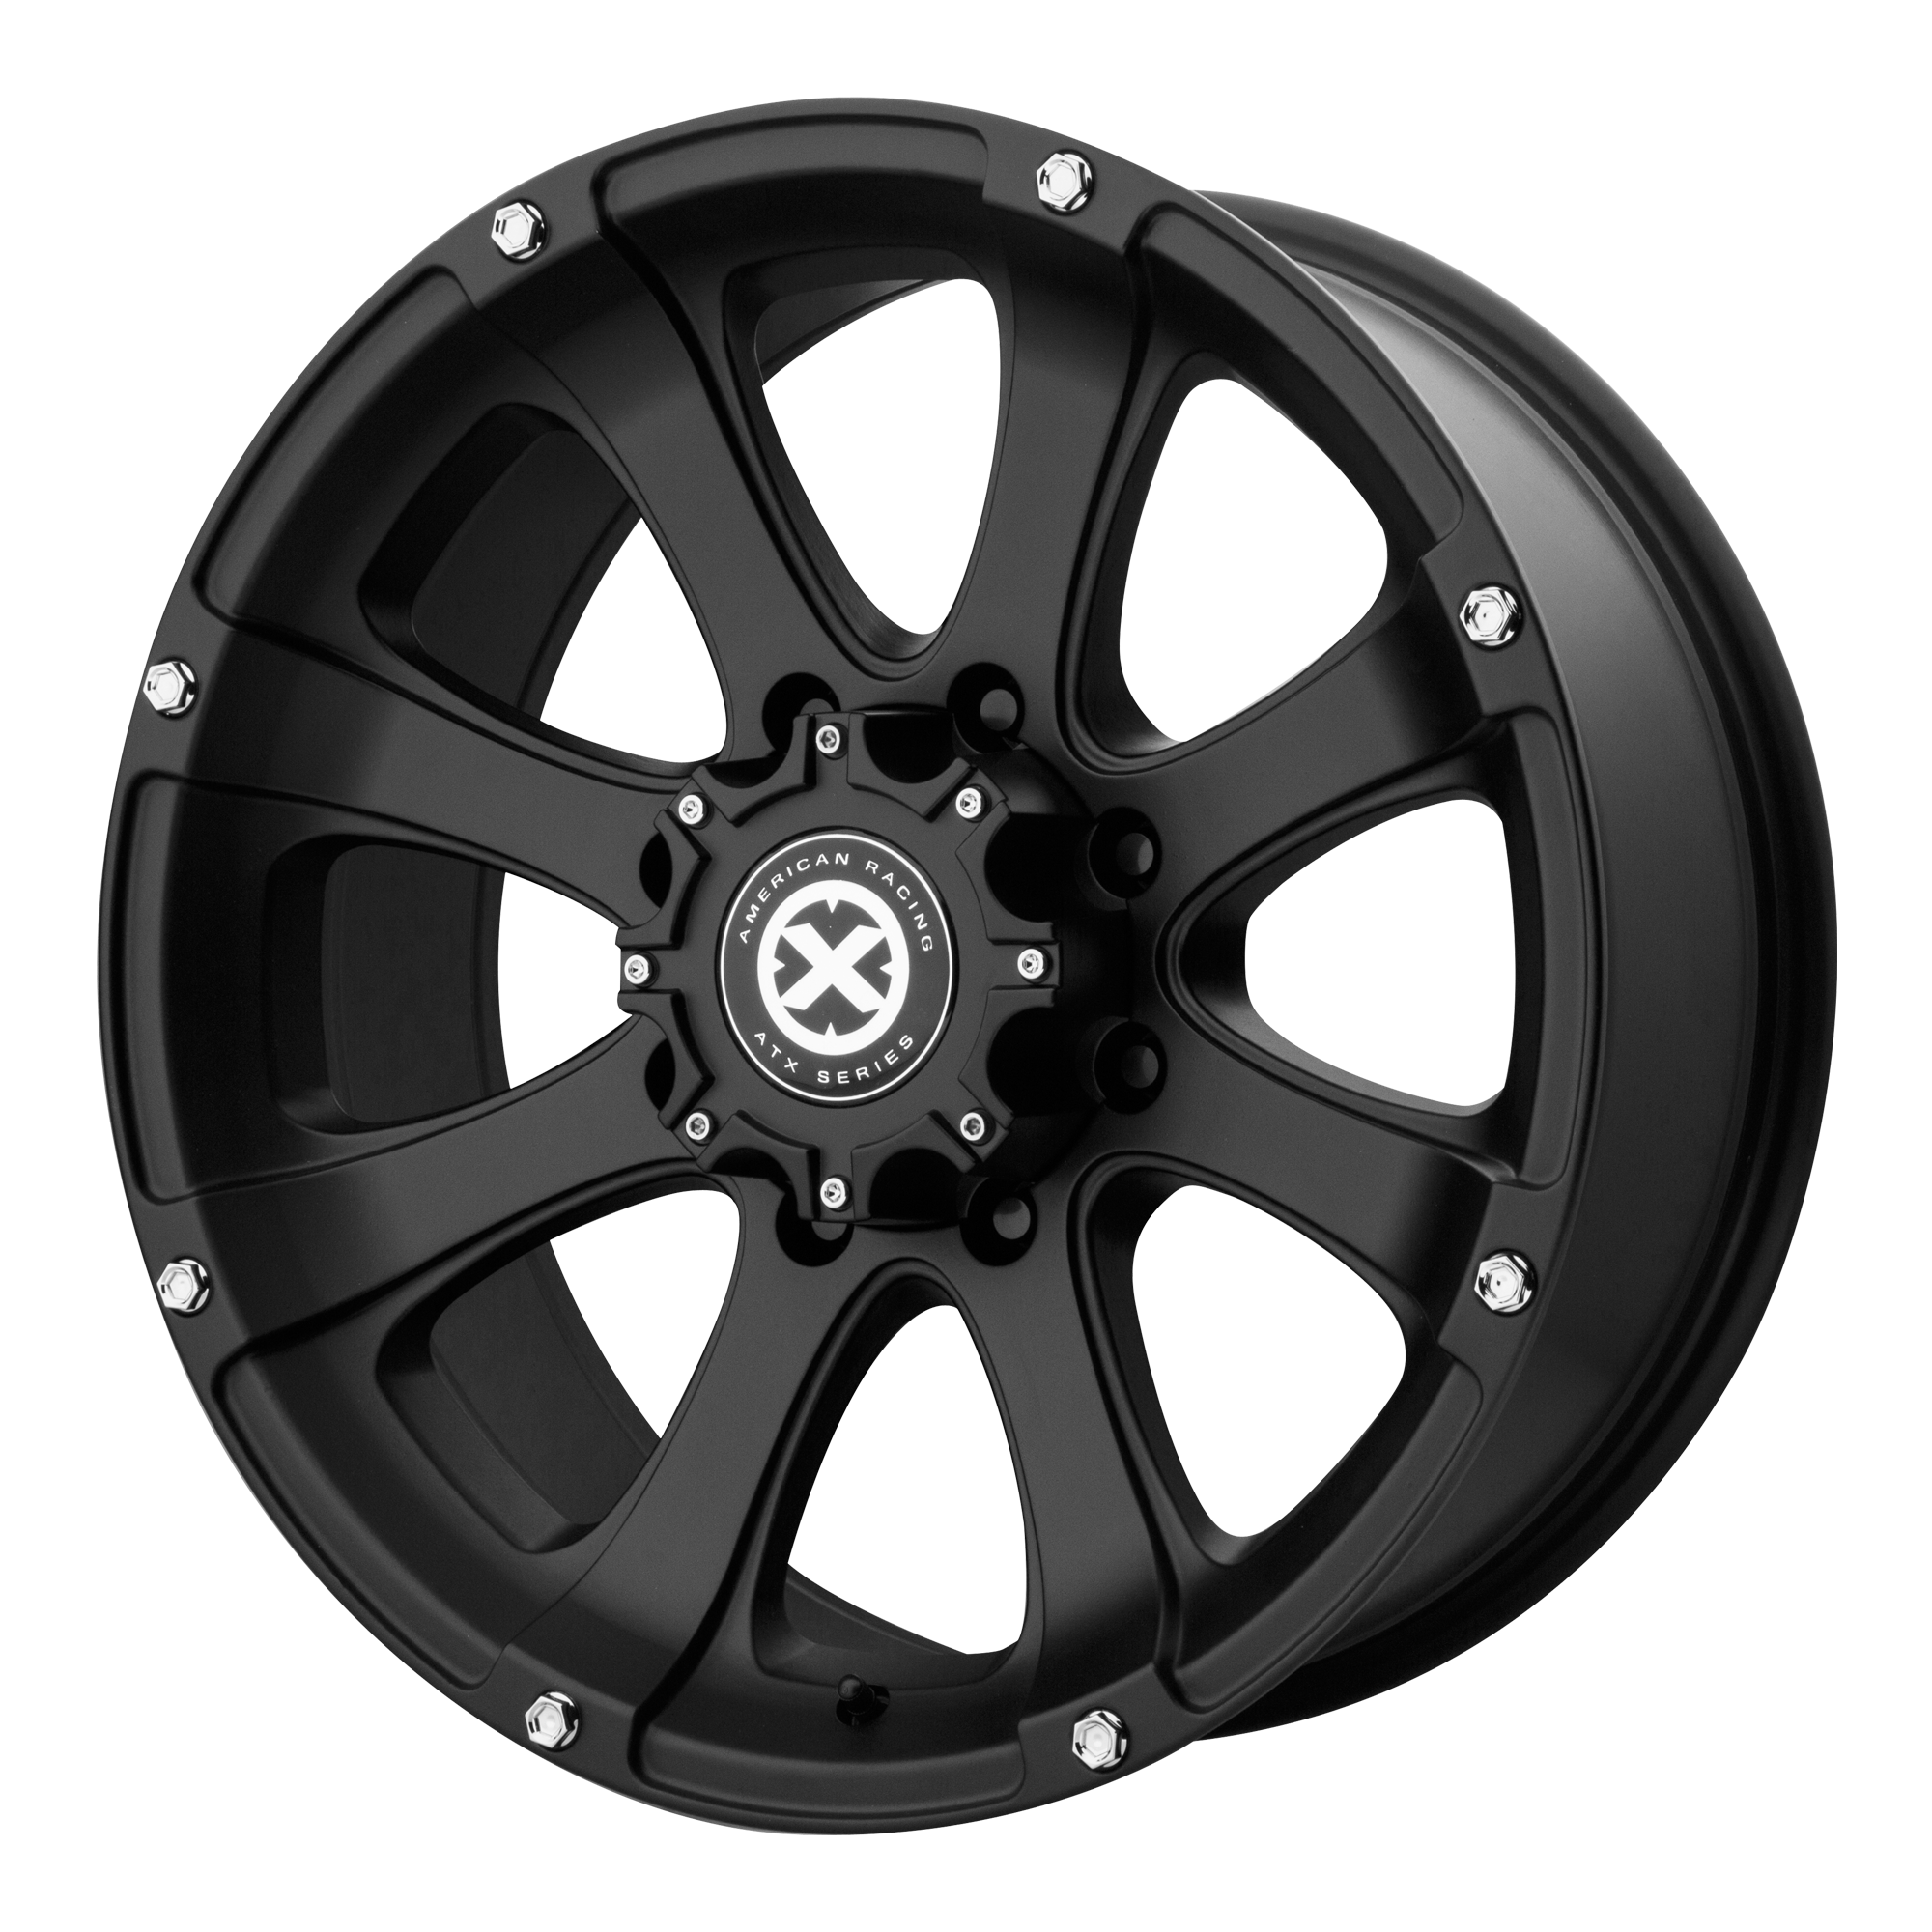 ATX Series Offroad Wheels LEDGE Cast Iron Black